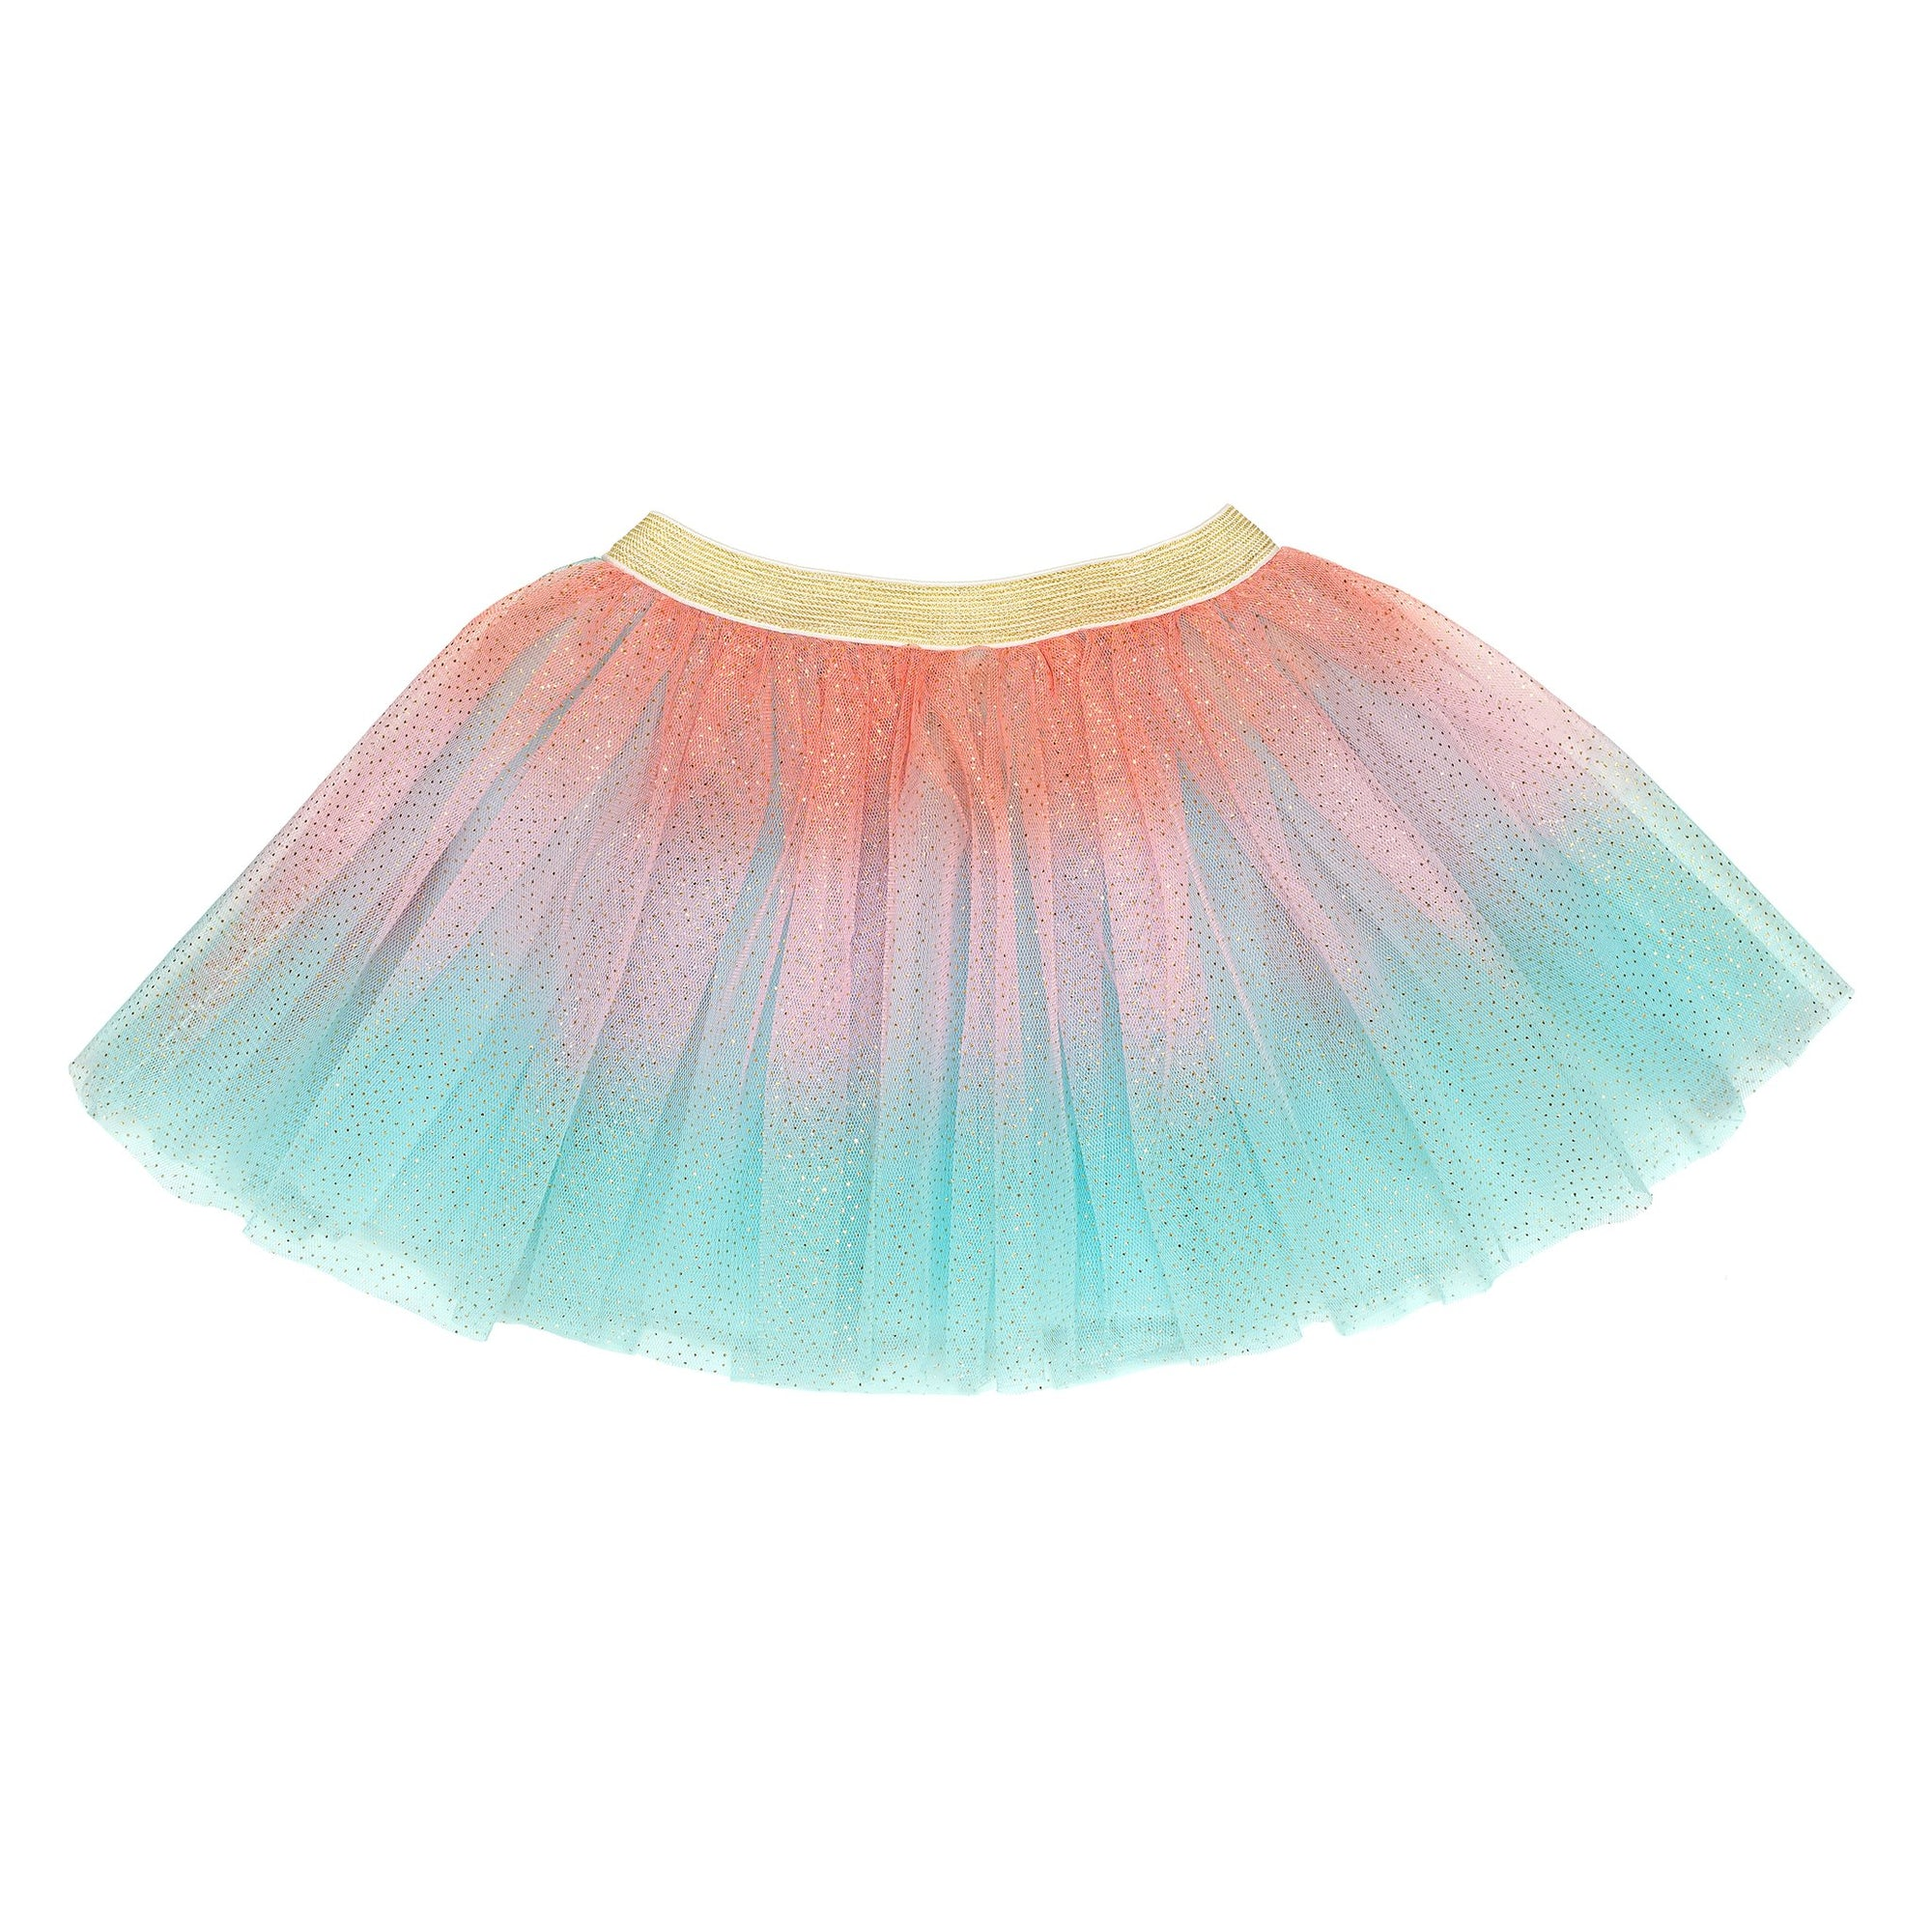 Sweet Wink Tutu - Coral Ombre 0-12m